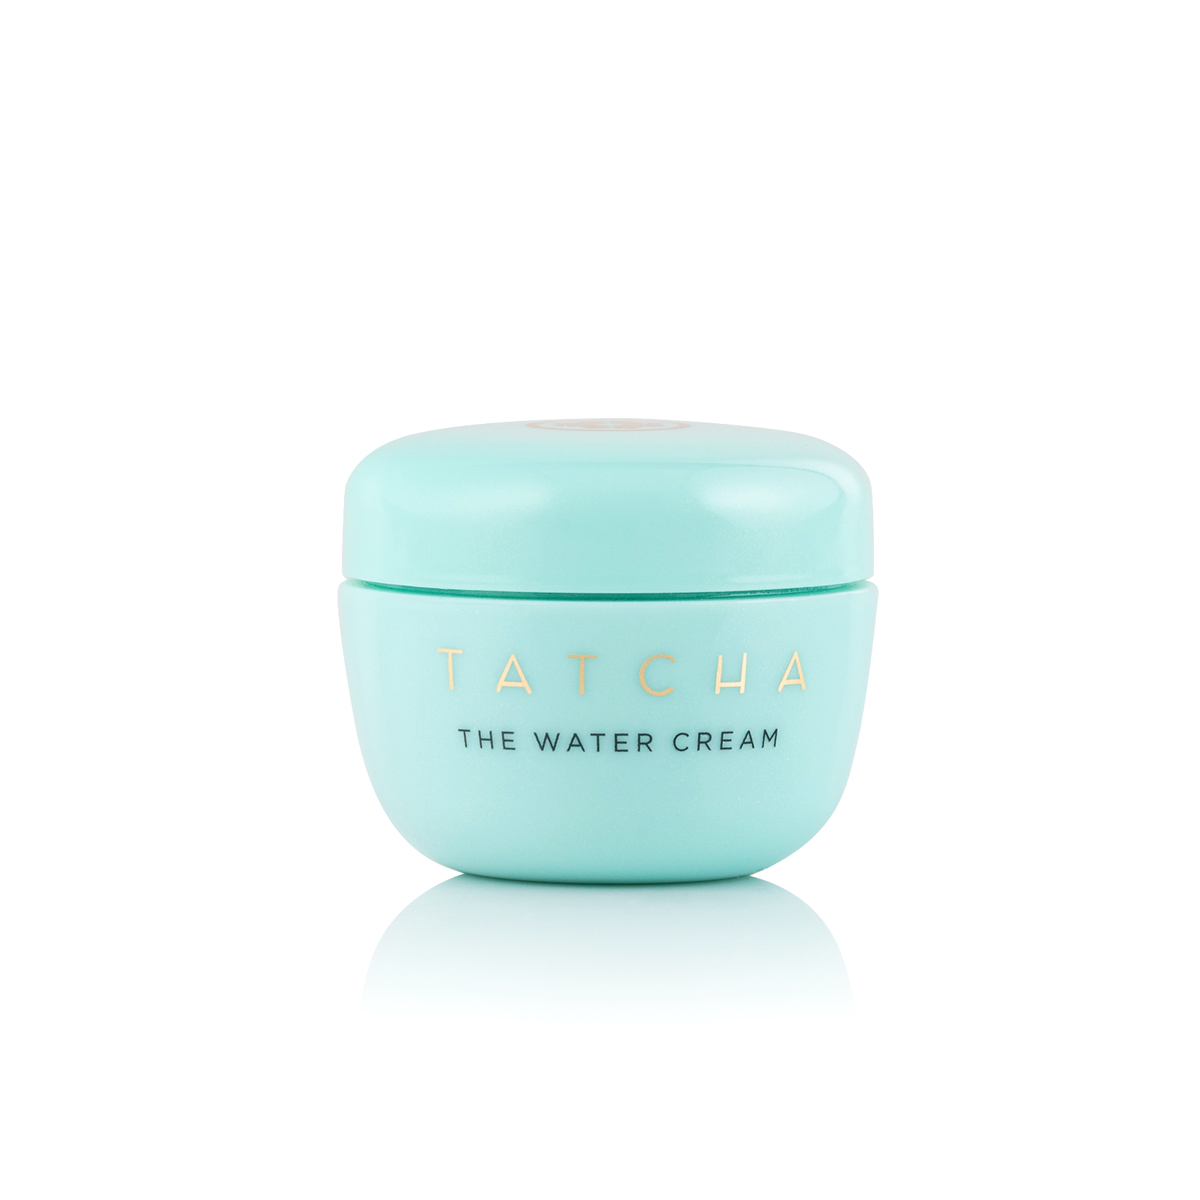 The Water Cream Oil-Free Pore Minimizing Moisturize by Tatcha #11